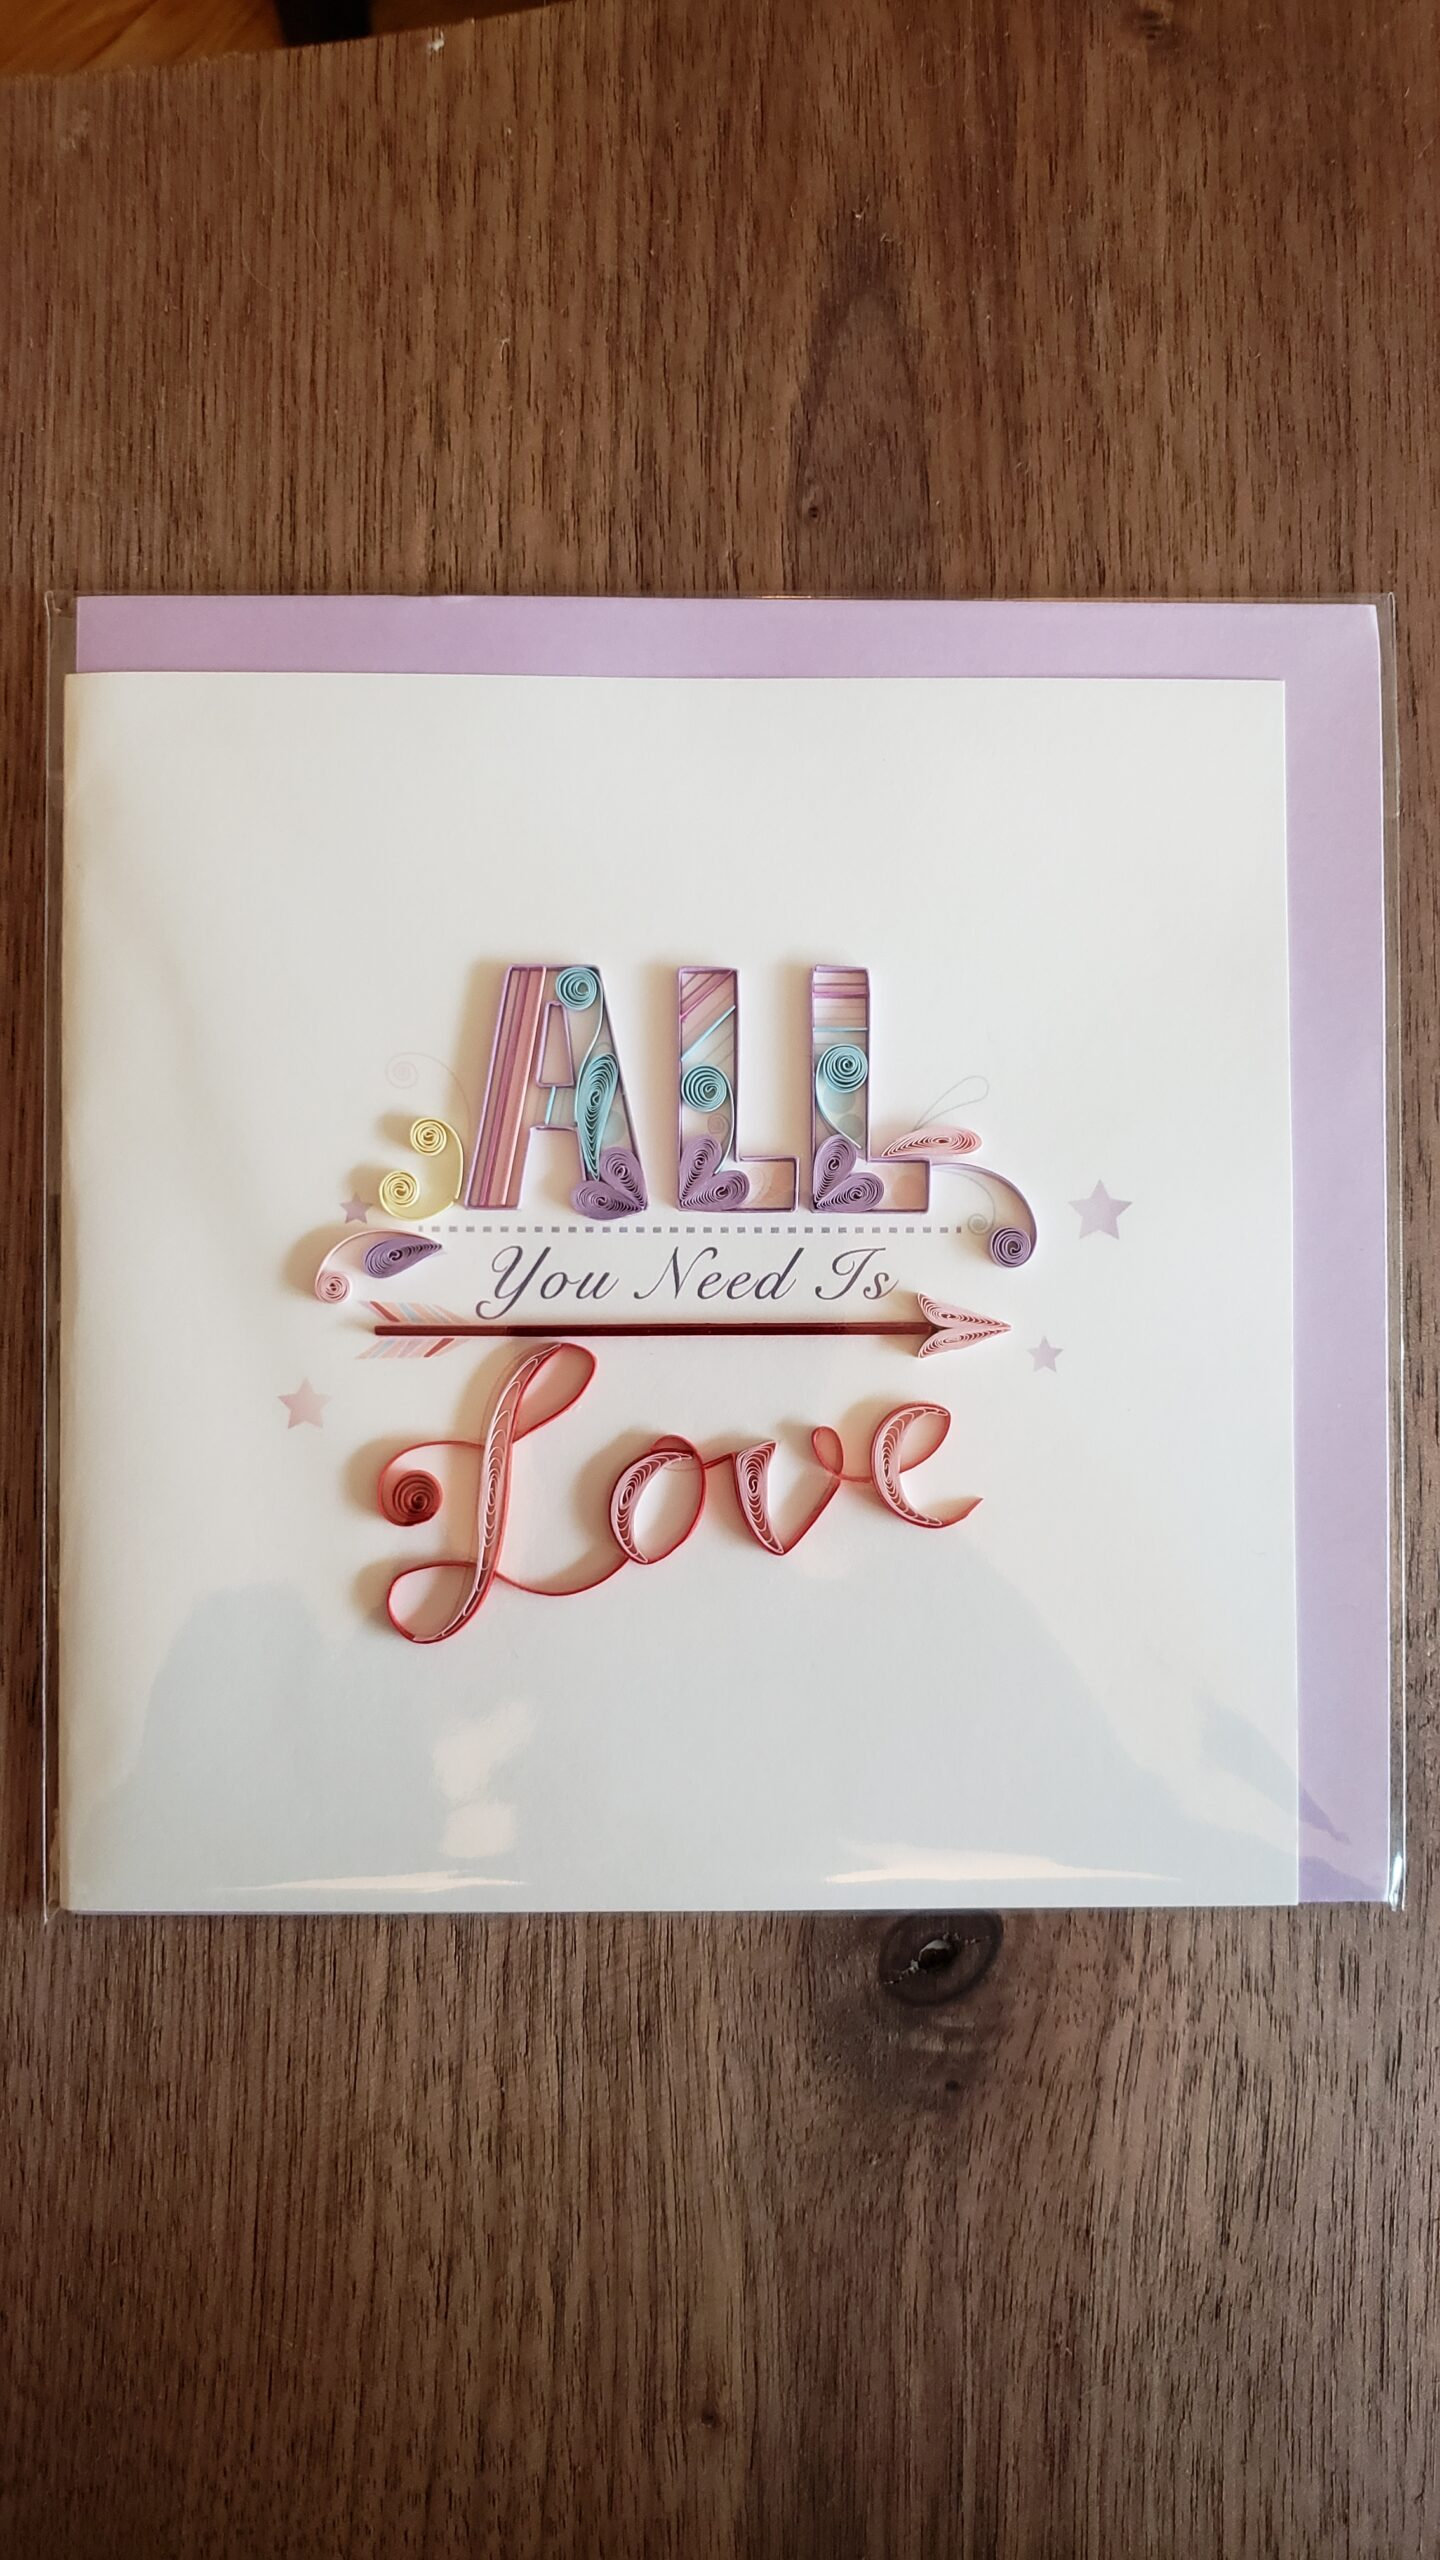 All You Need is Love Card 6 in. x 6 in.